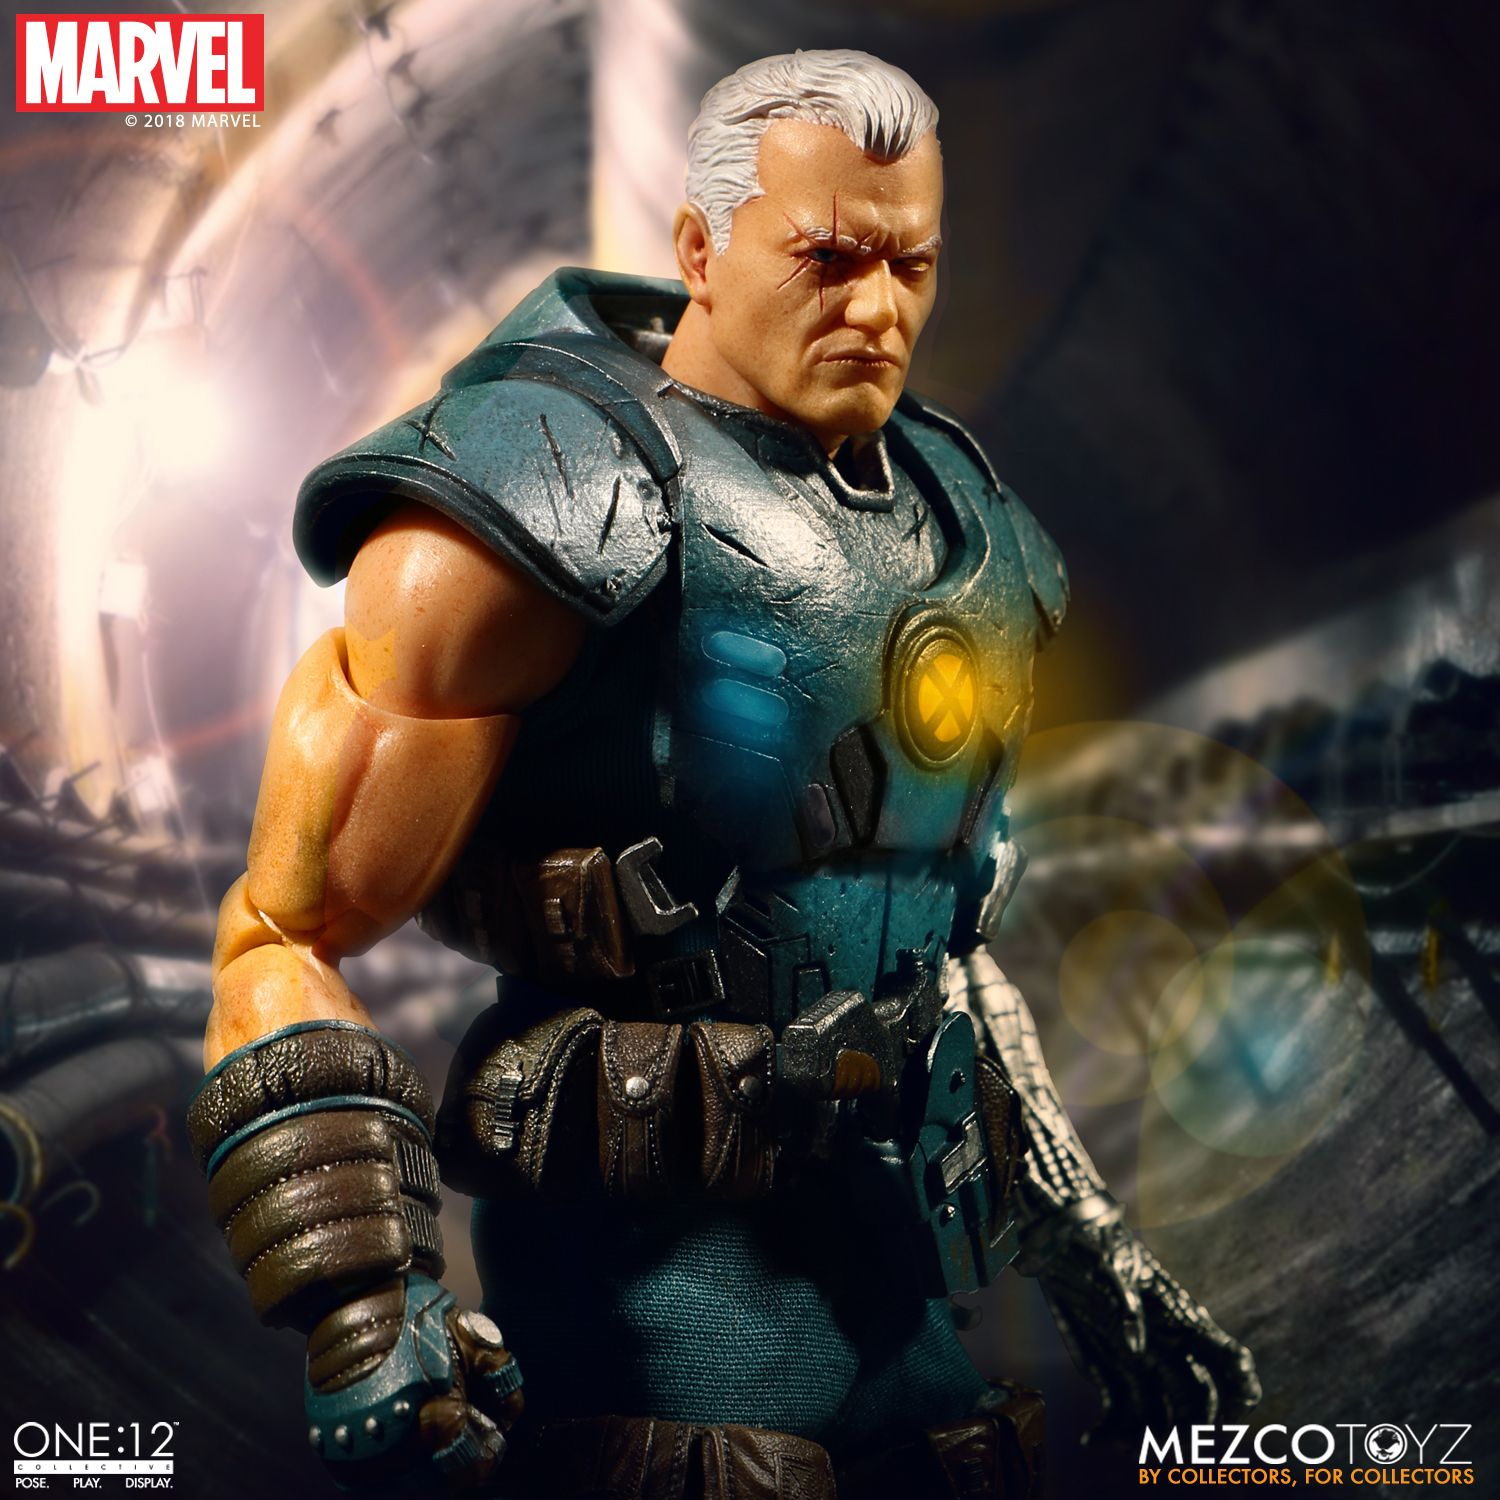 Mezco - One:12 Collective - Marvel - Cable